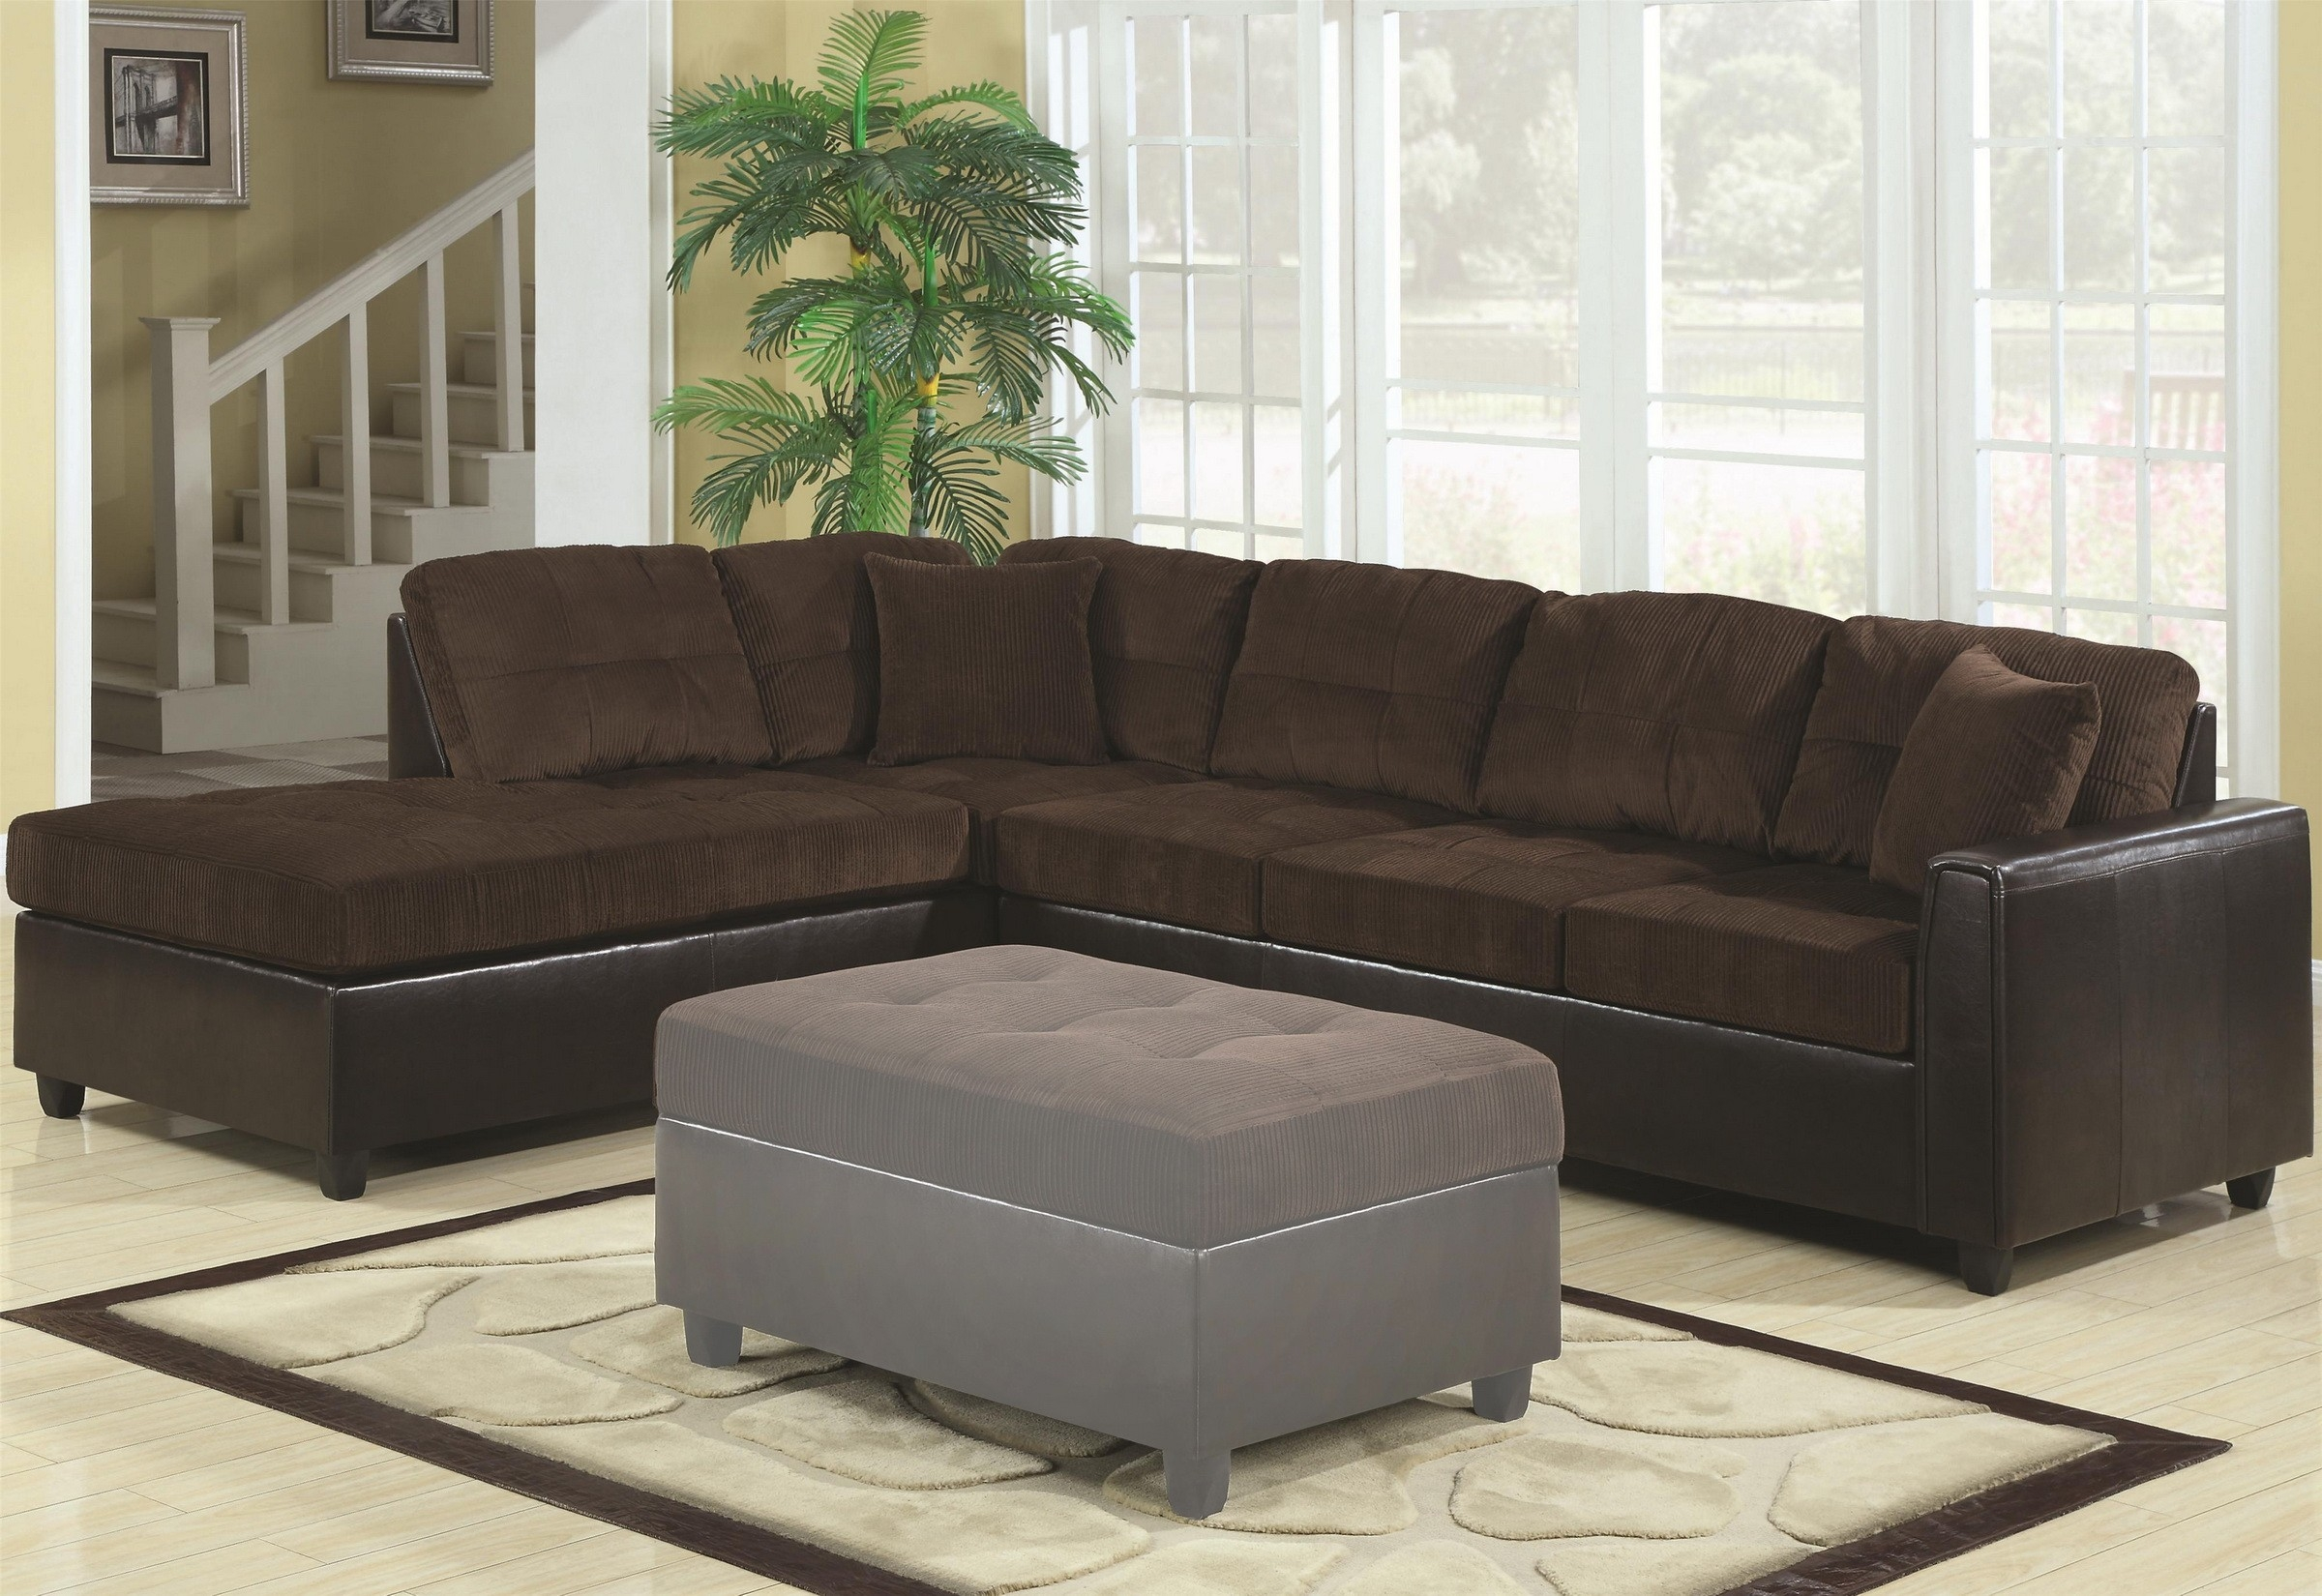 L Sectional Sofa has one of the best kind of other is Light Grey L Shaped Fabric Sectional Sofa With Three Tufted Back - Book of Stefanie